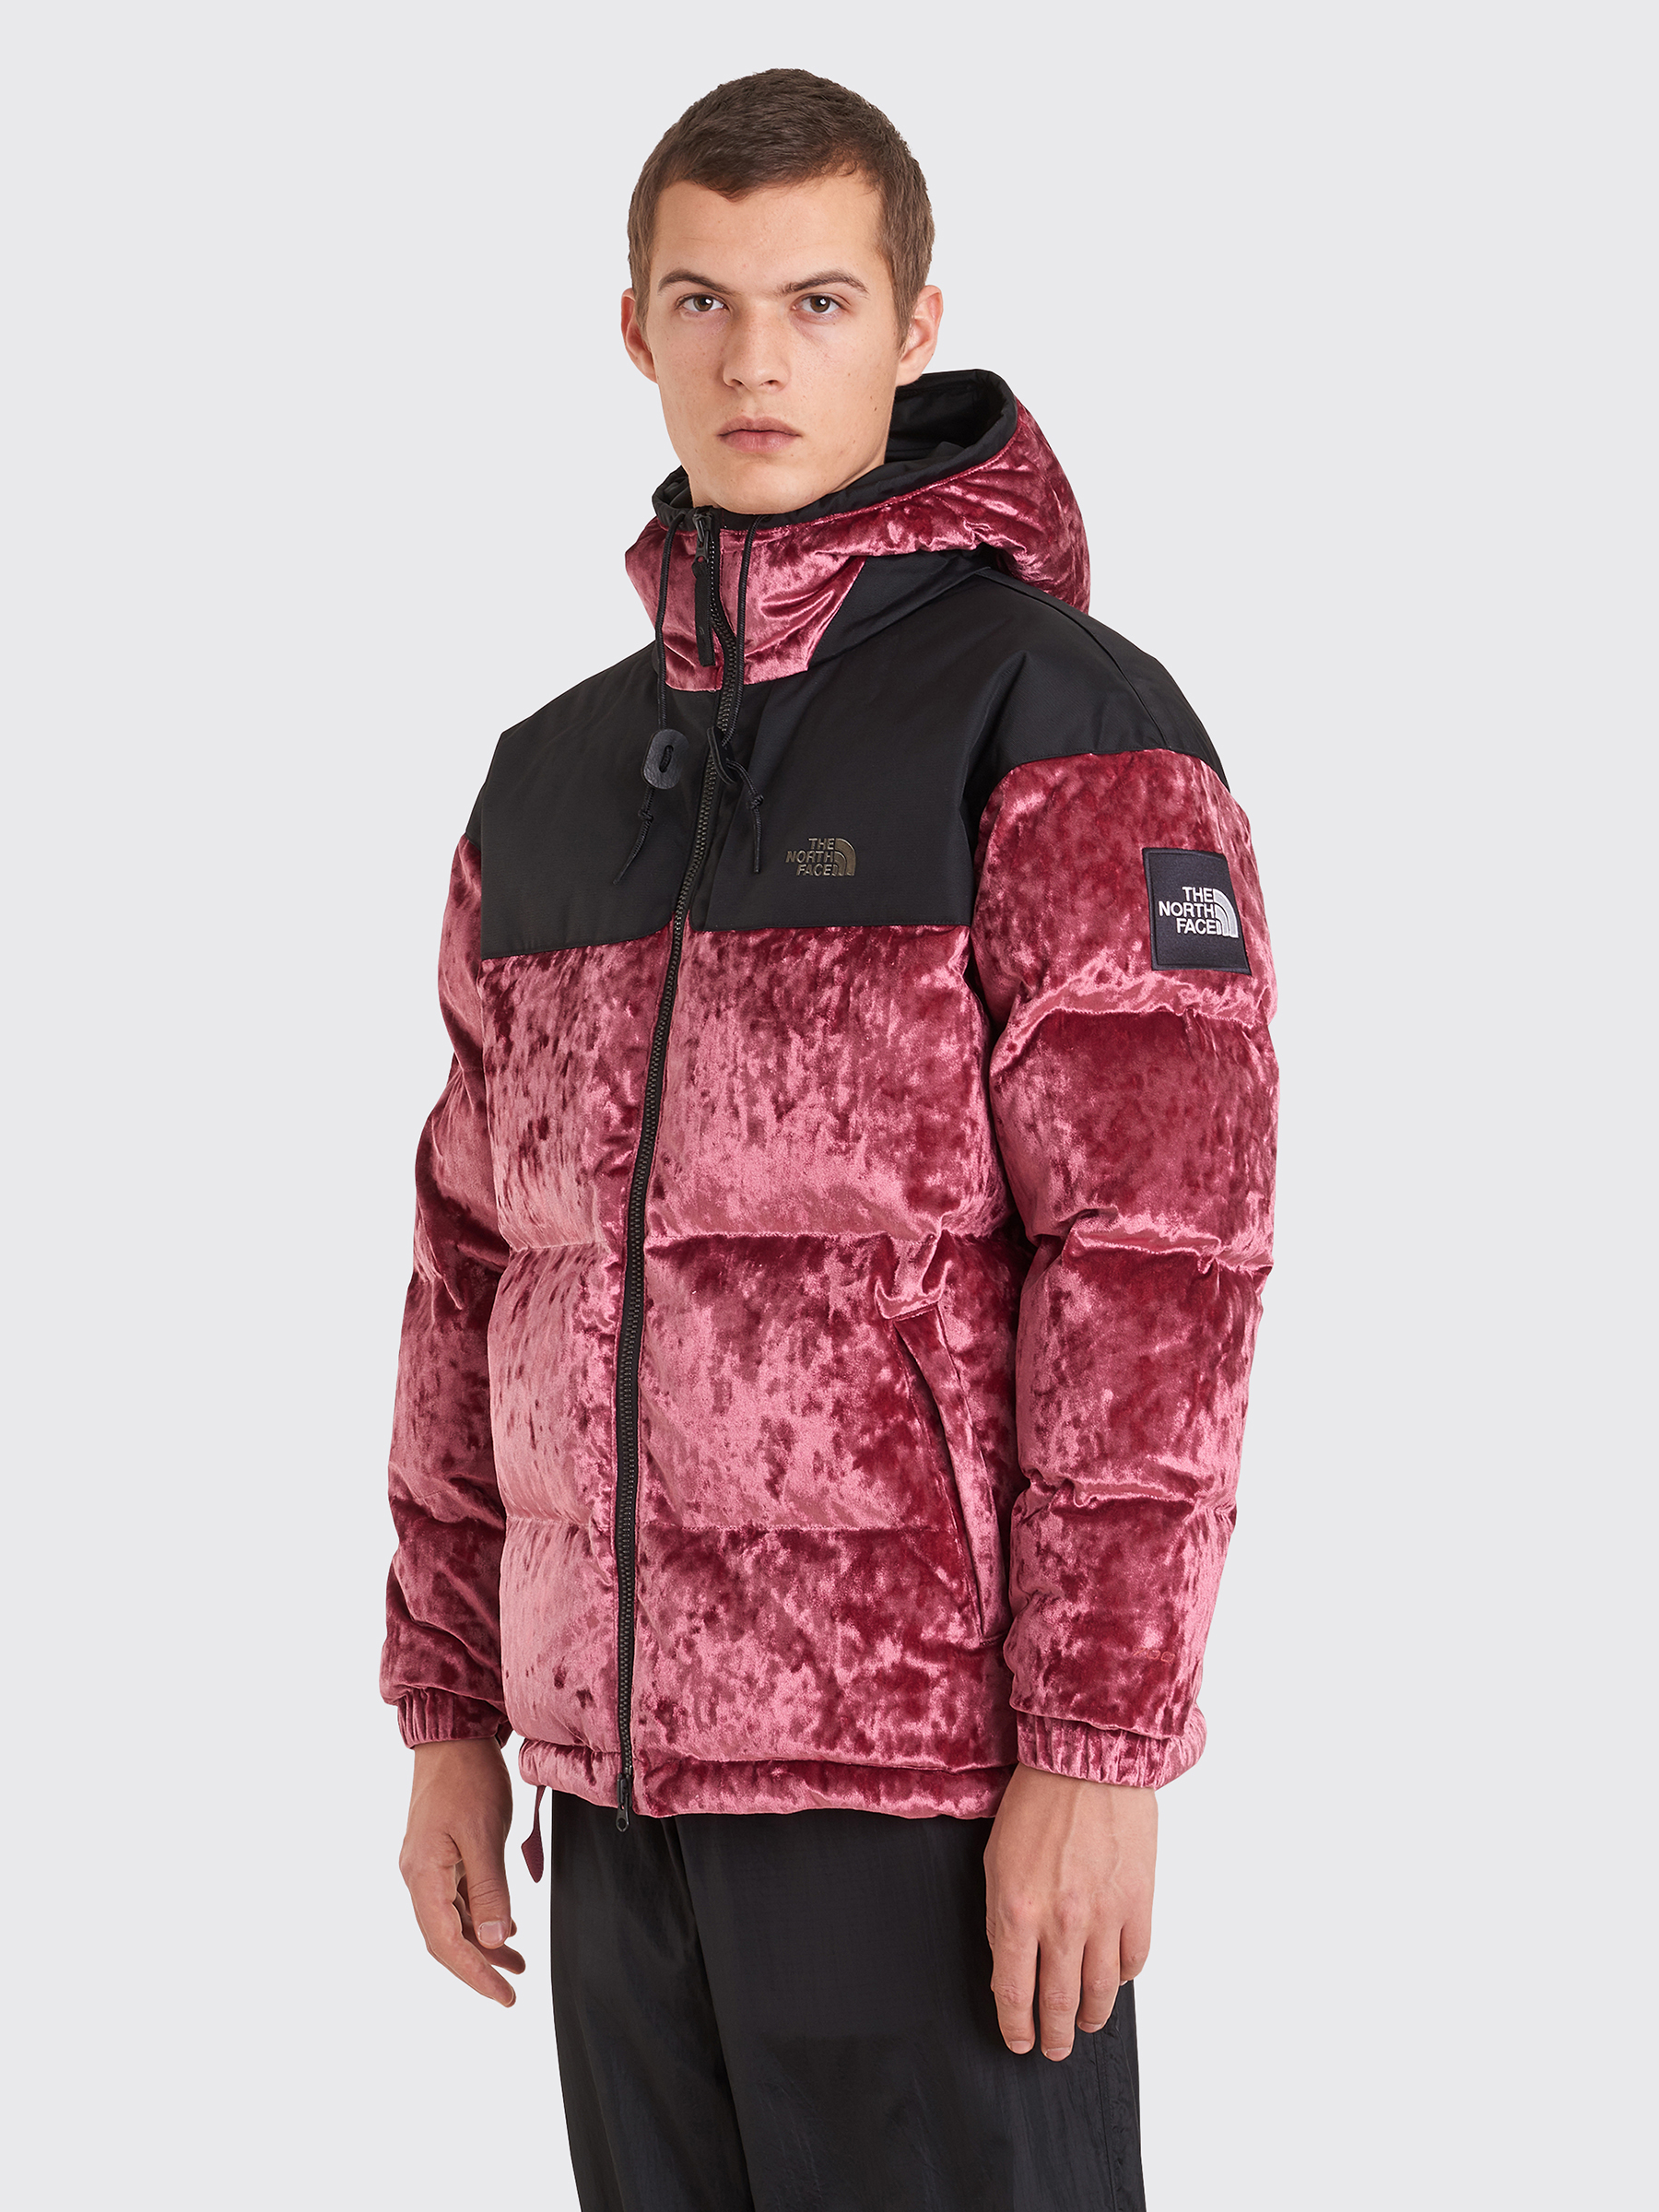 67fa9502a The North Face Black Series Velvet Nuptse Jacket Regal Red